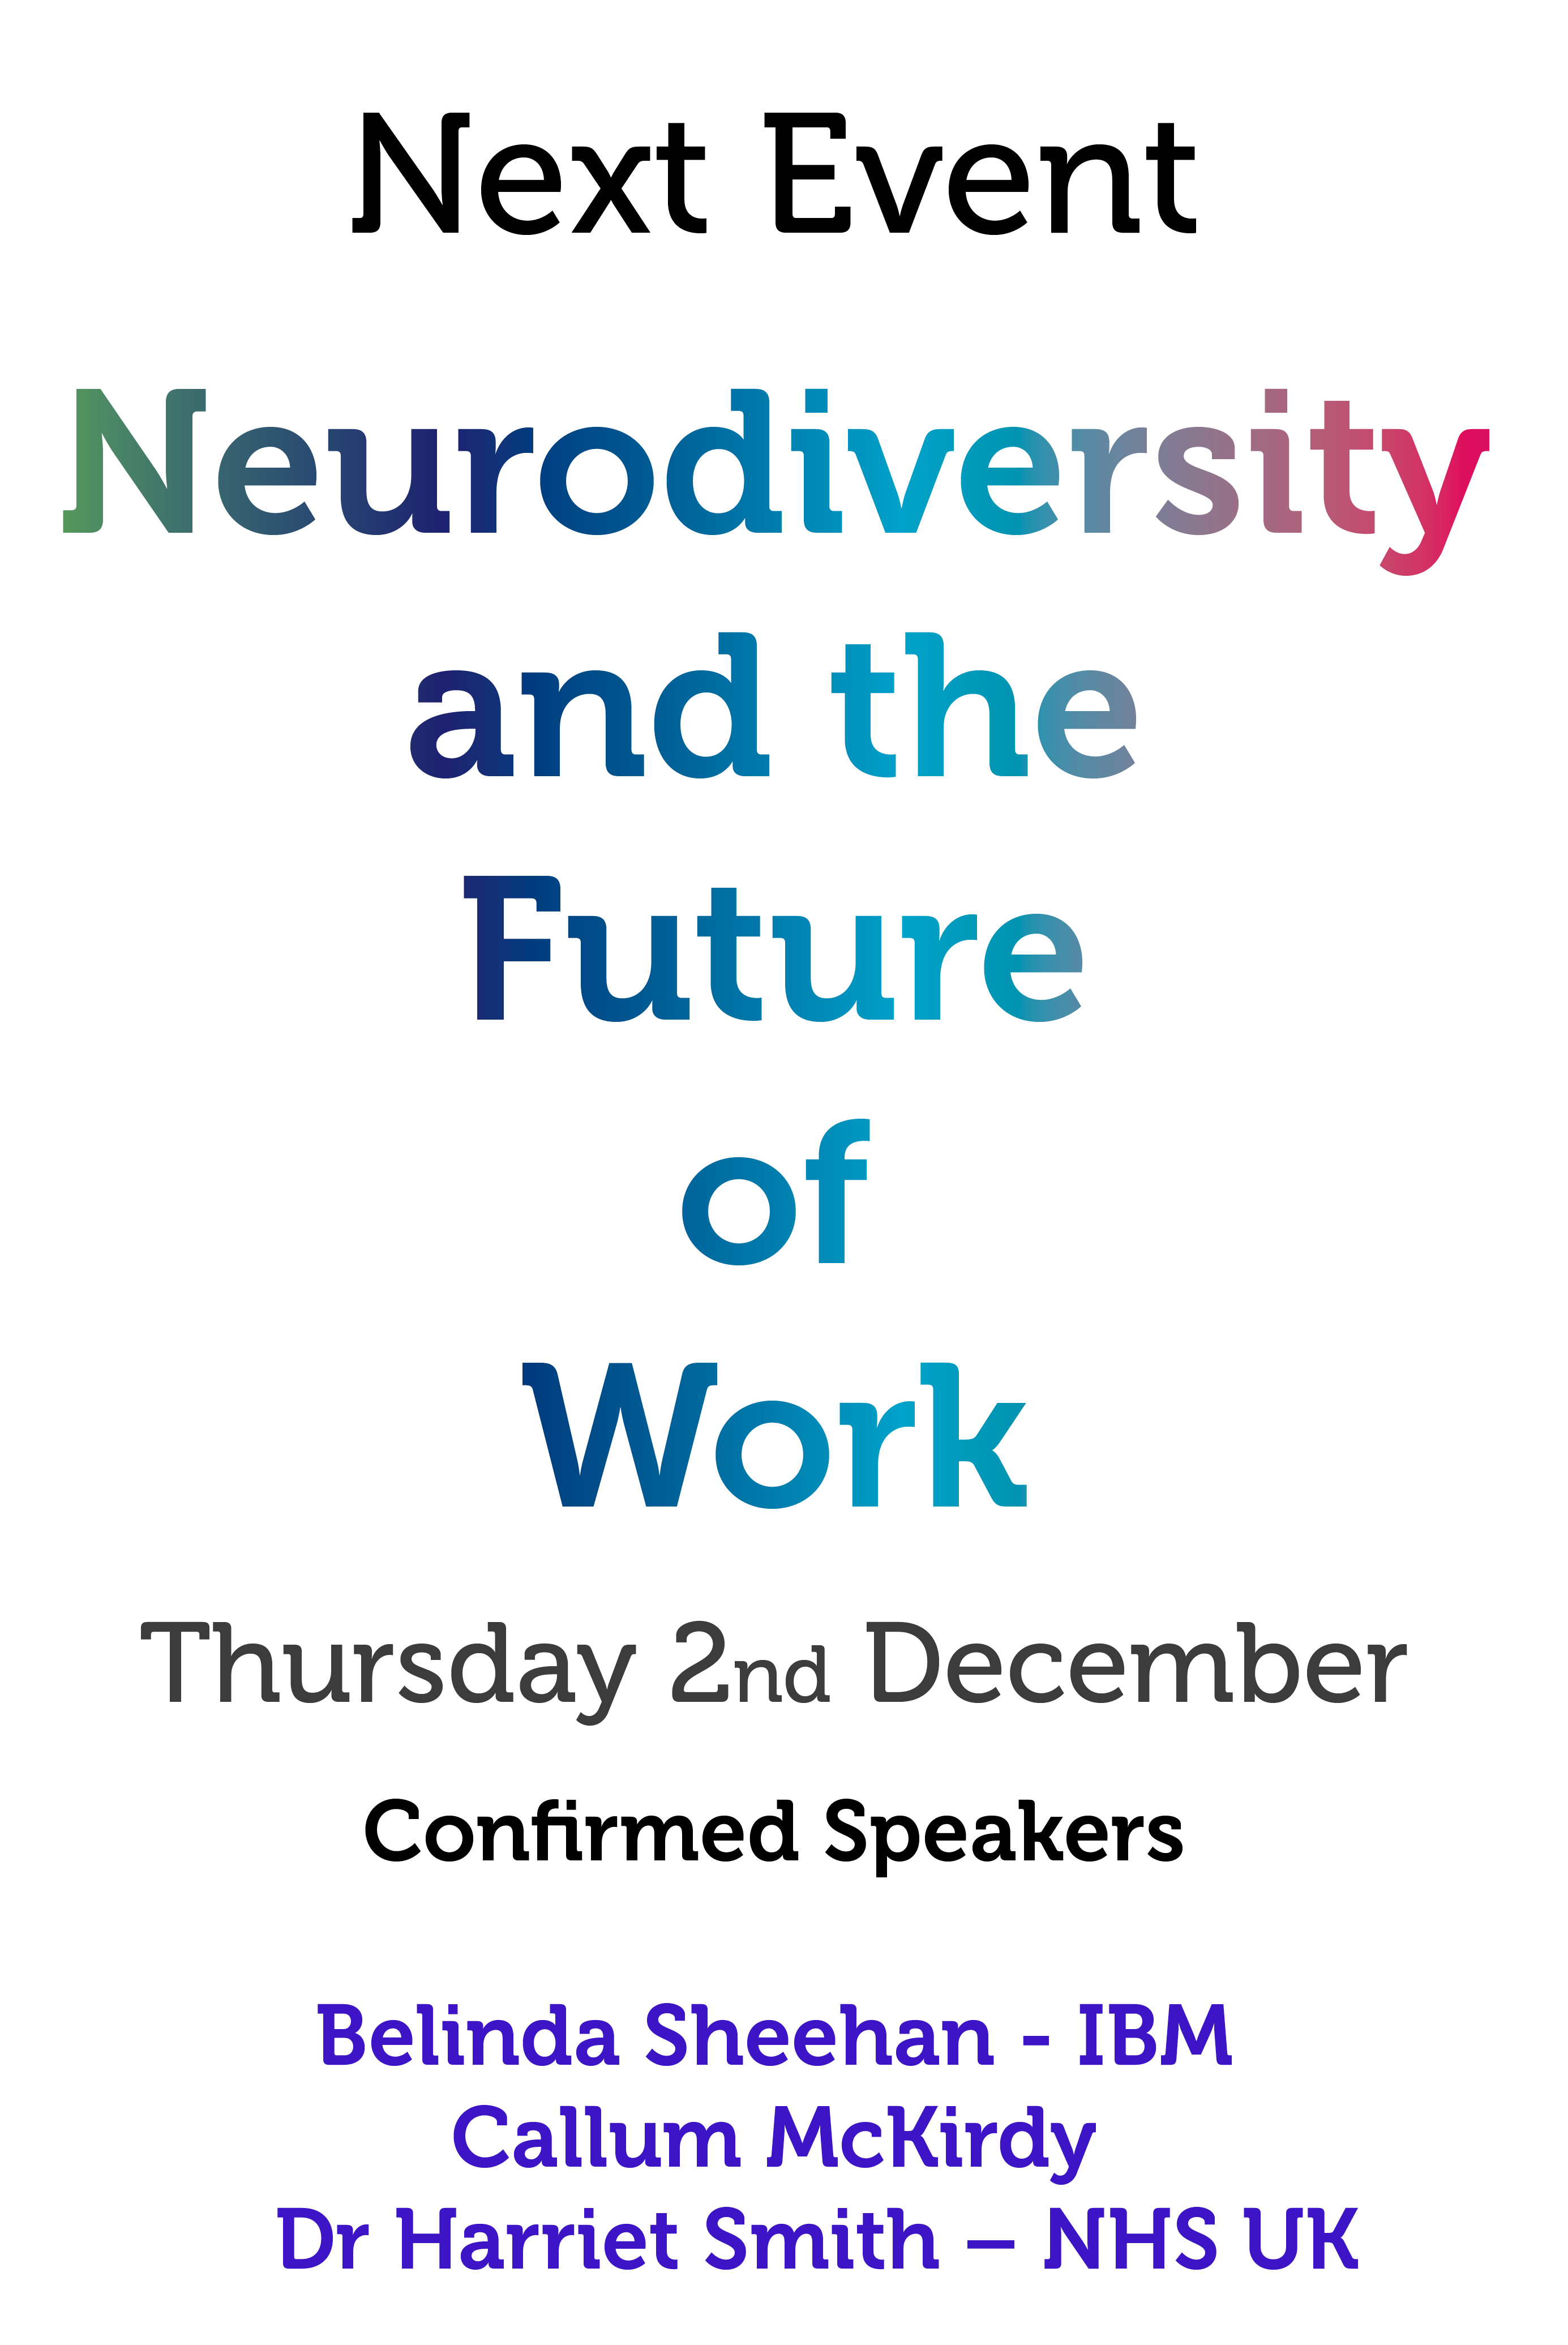 Banner: Neurodiversity and the Future of Work